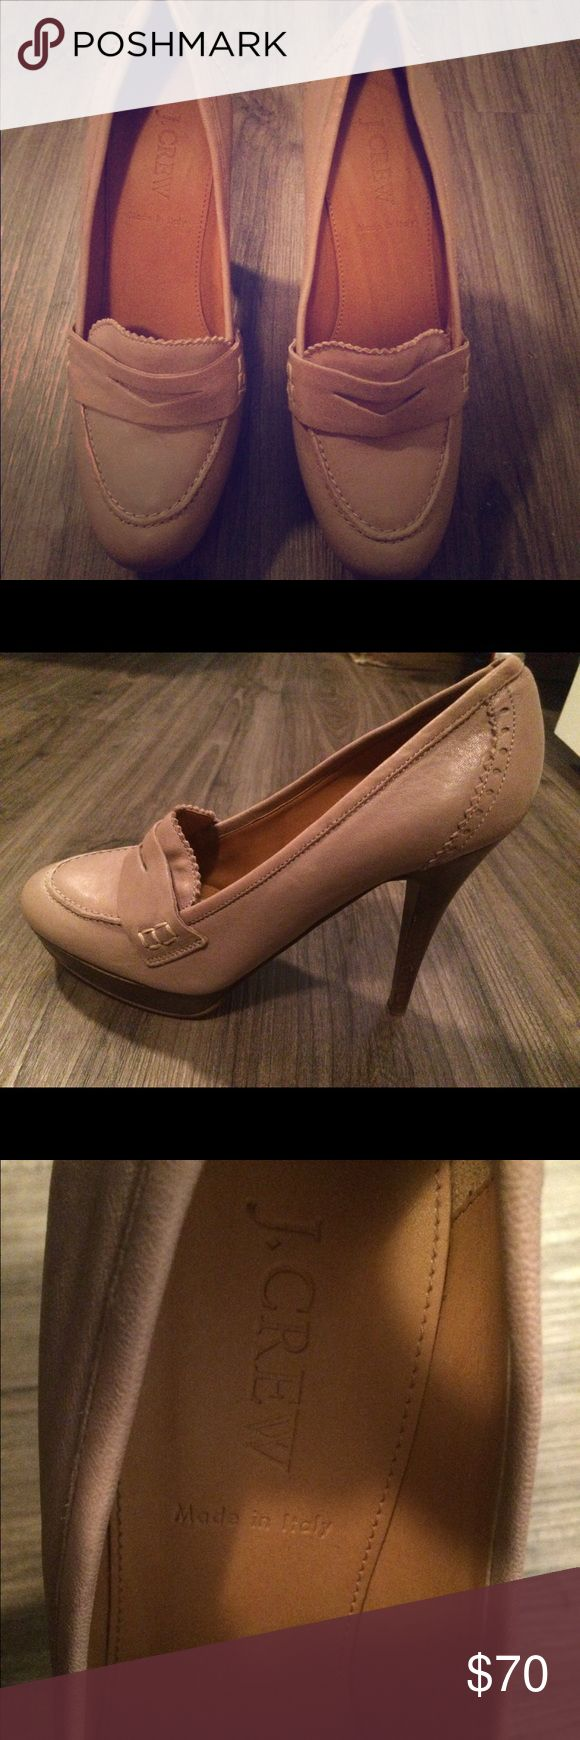 "J Crew Biella Penny Loafer High Heels Size 7 • Warm taupe/tan polished Italian leather  • 4 1/4"" semi-gloss stacked wooden heel with an exterior platform for comfort • 3/4"" Platform  • Almond shaped toe  • Man made lining and sole J. Crew Shoes Heels"